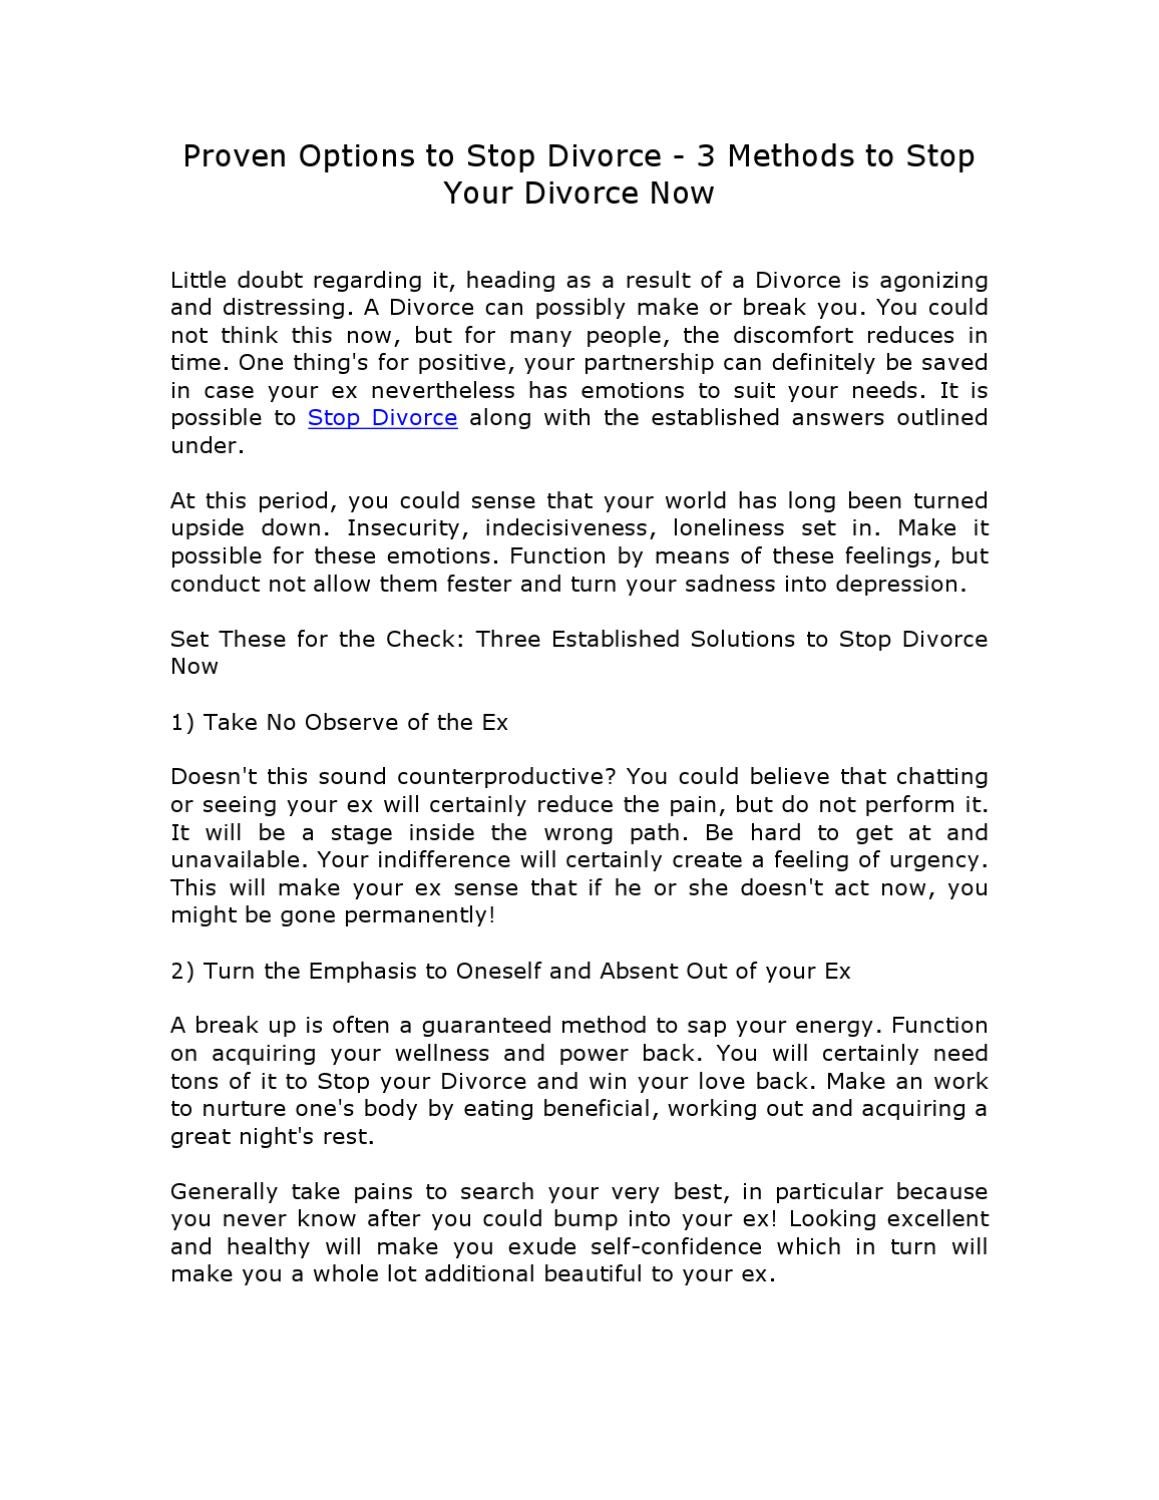 Stop Divorce - Save Your Marriage Today - Here's How    by